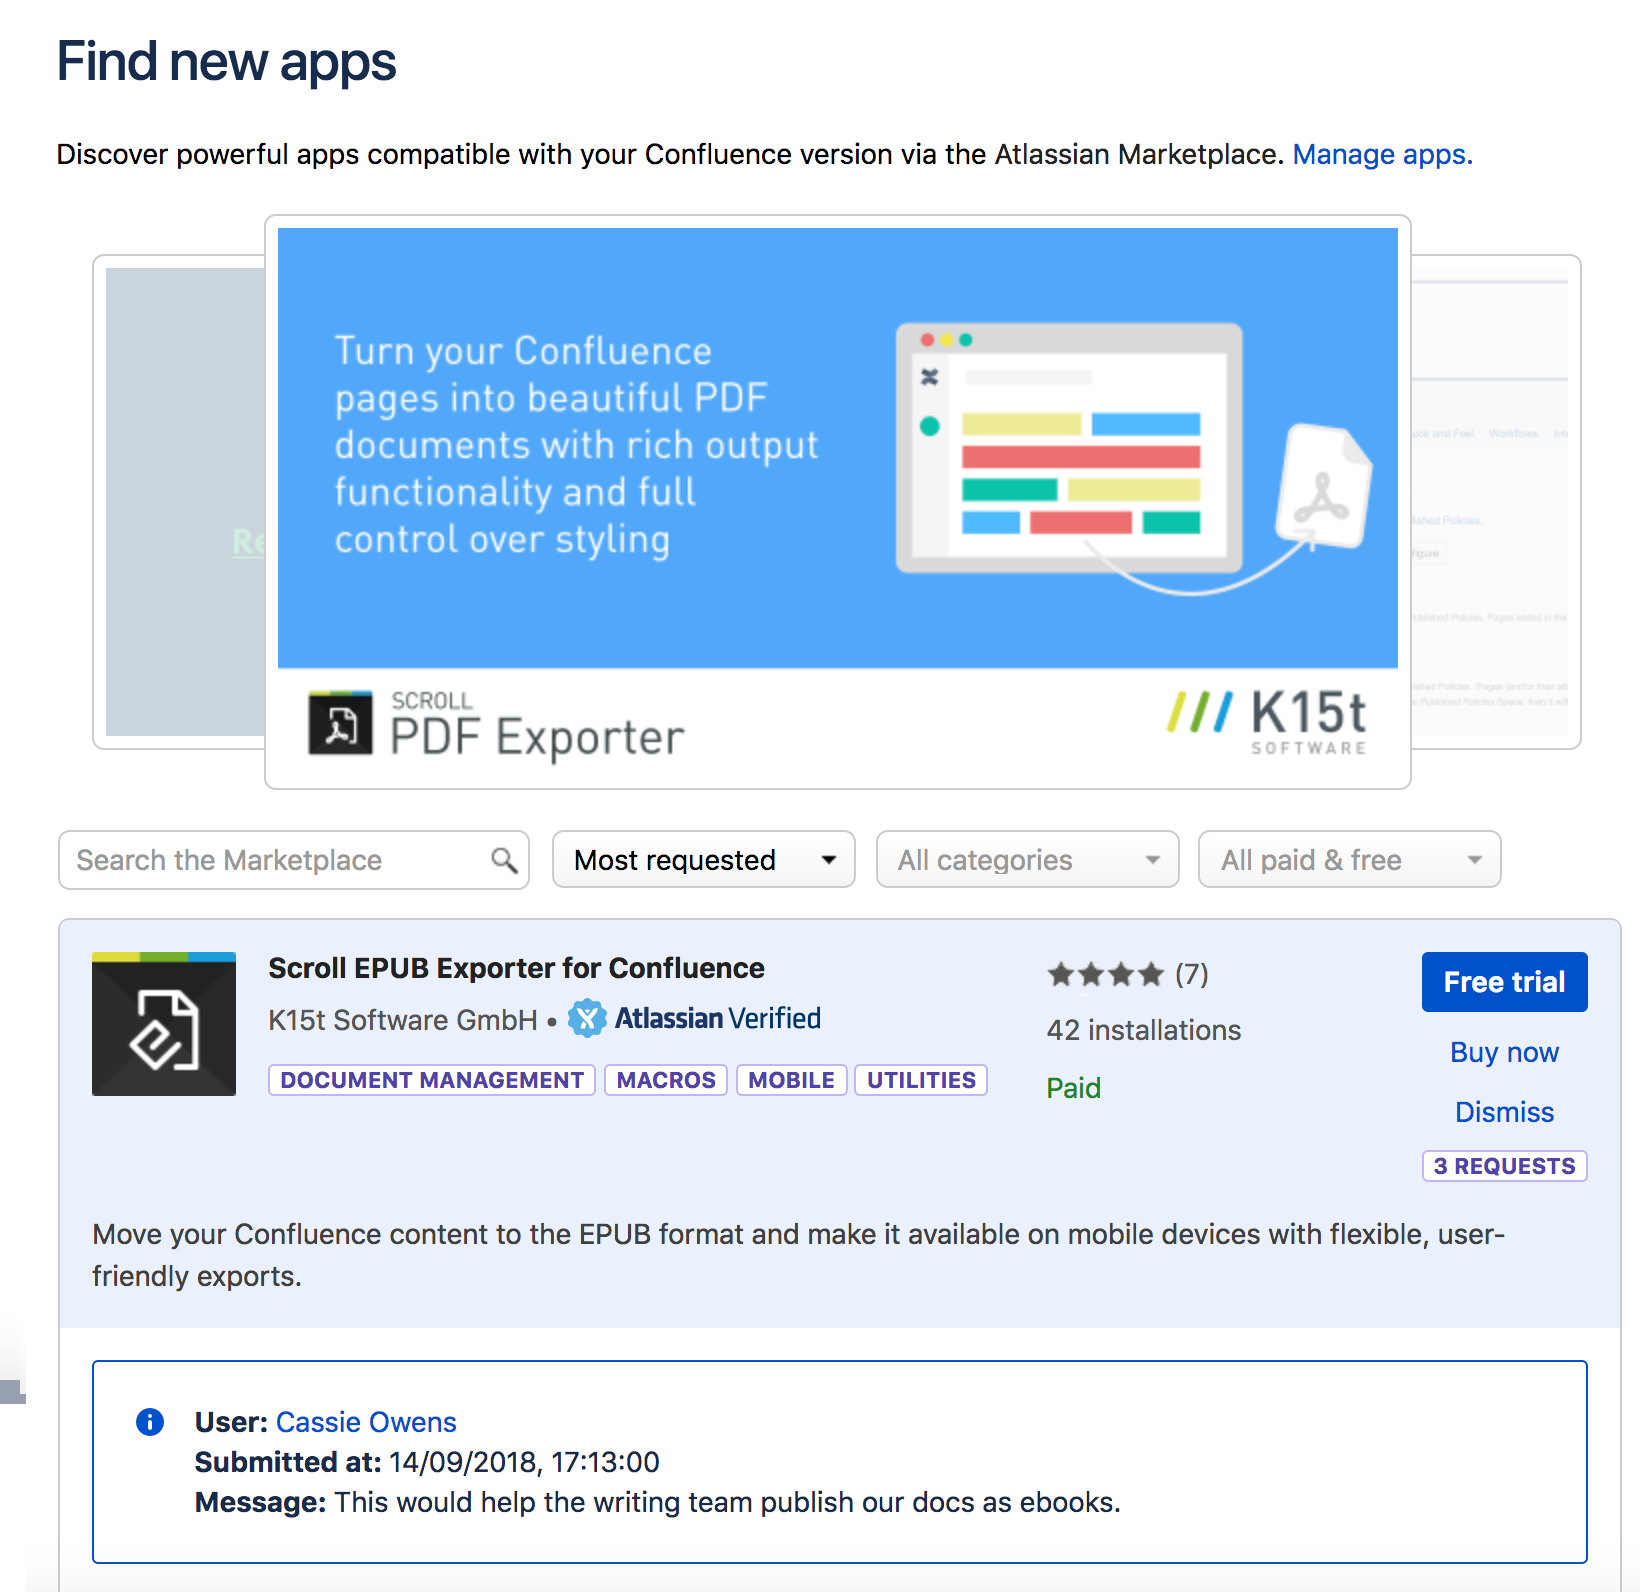 Managing user requests for Marketplace apps - Atlassian